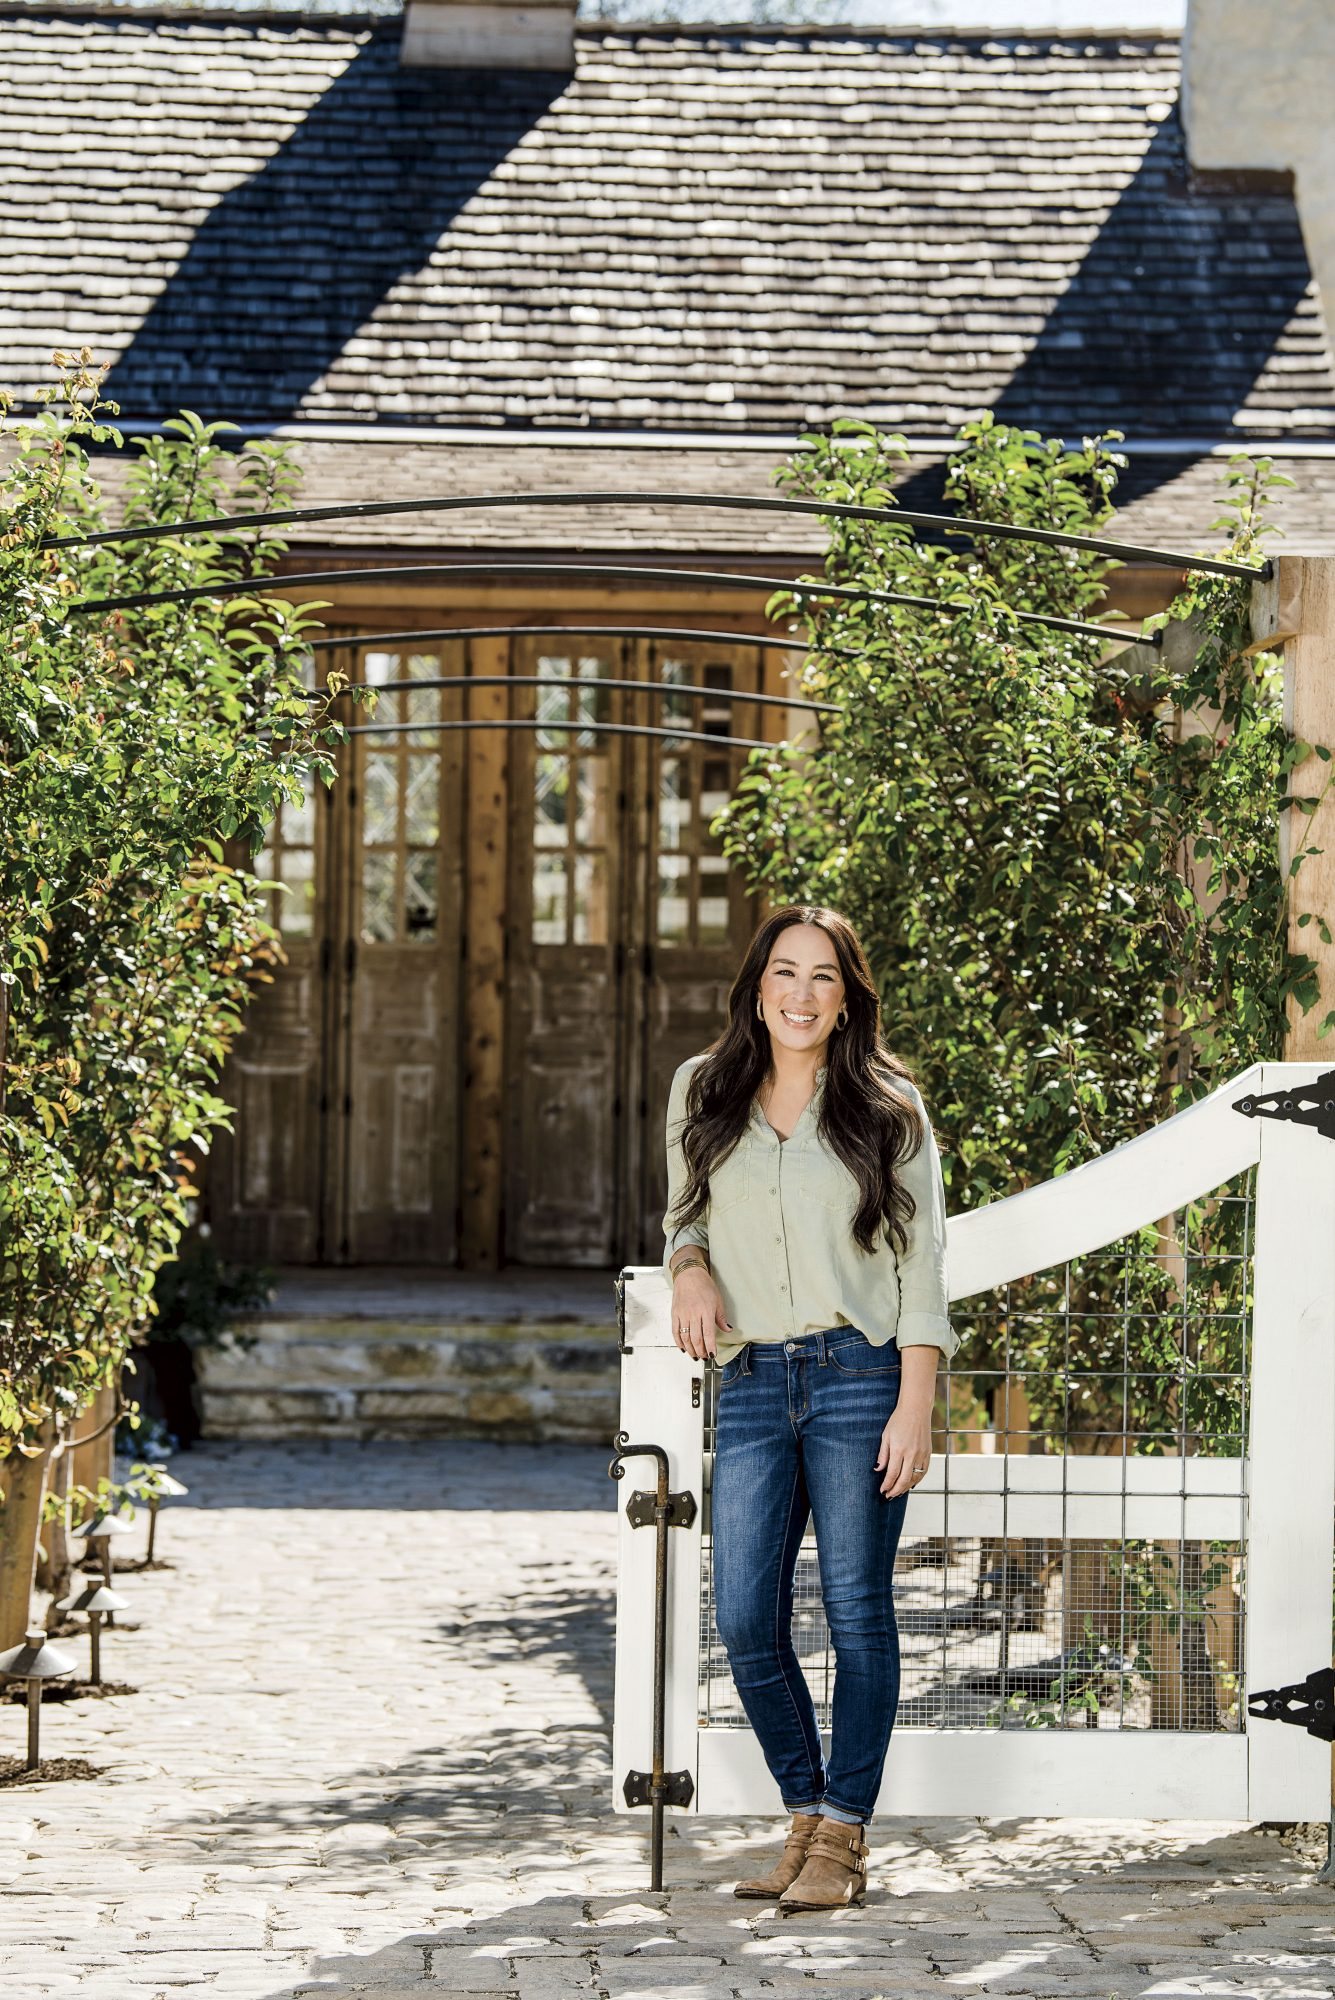 Joanna Gaines At Home